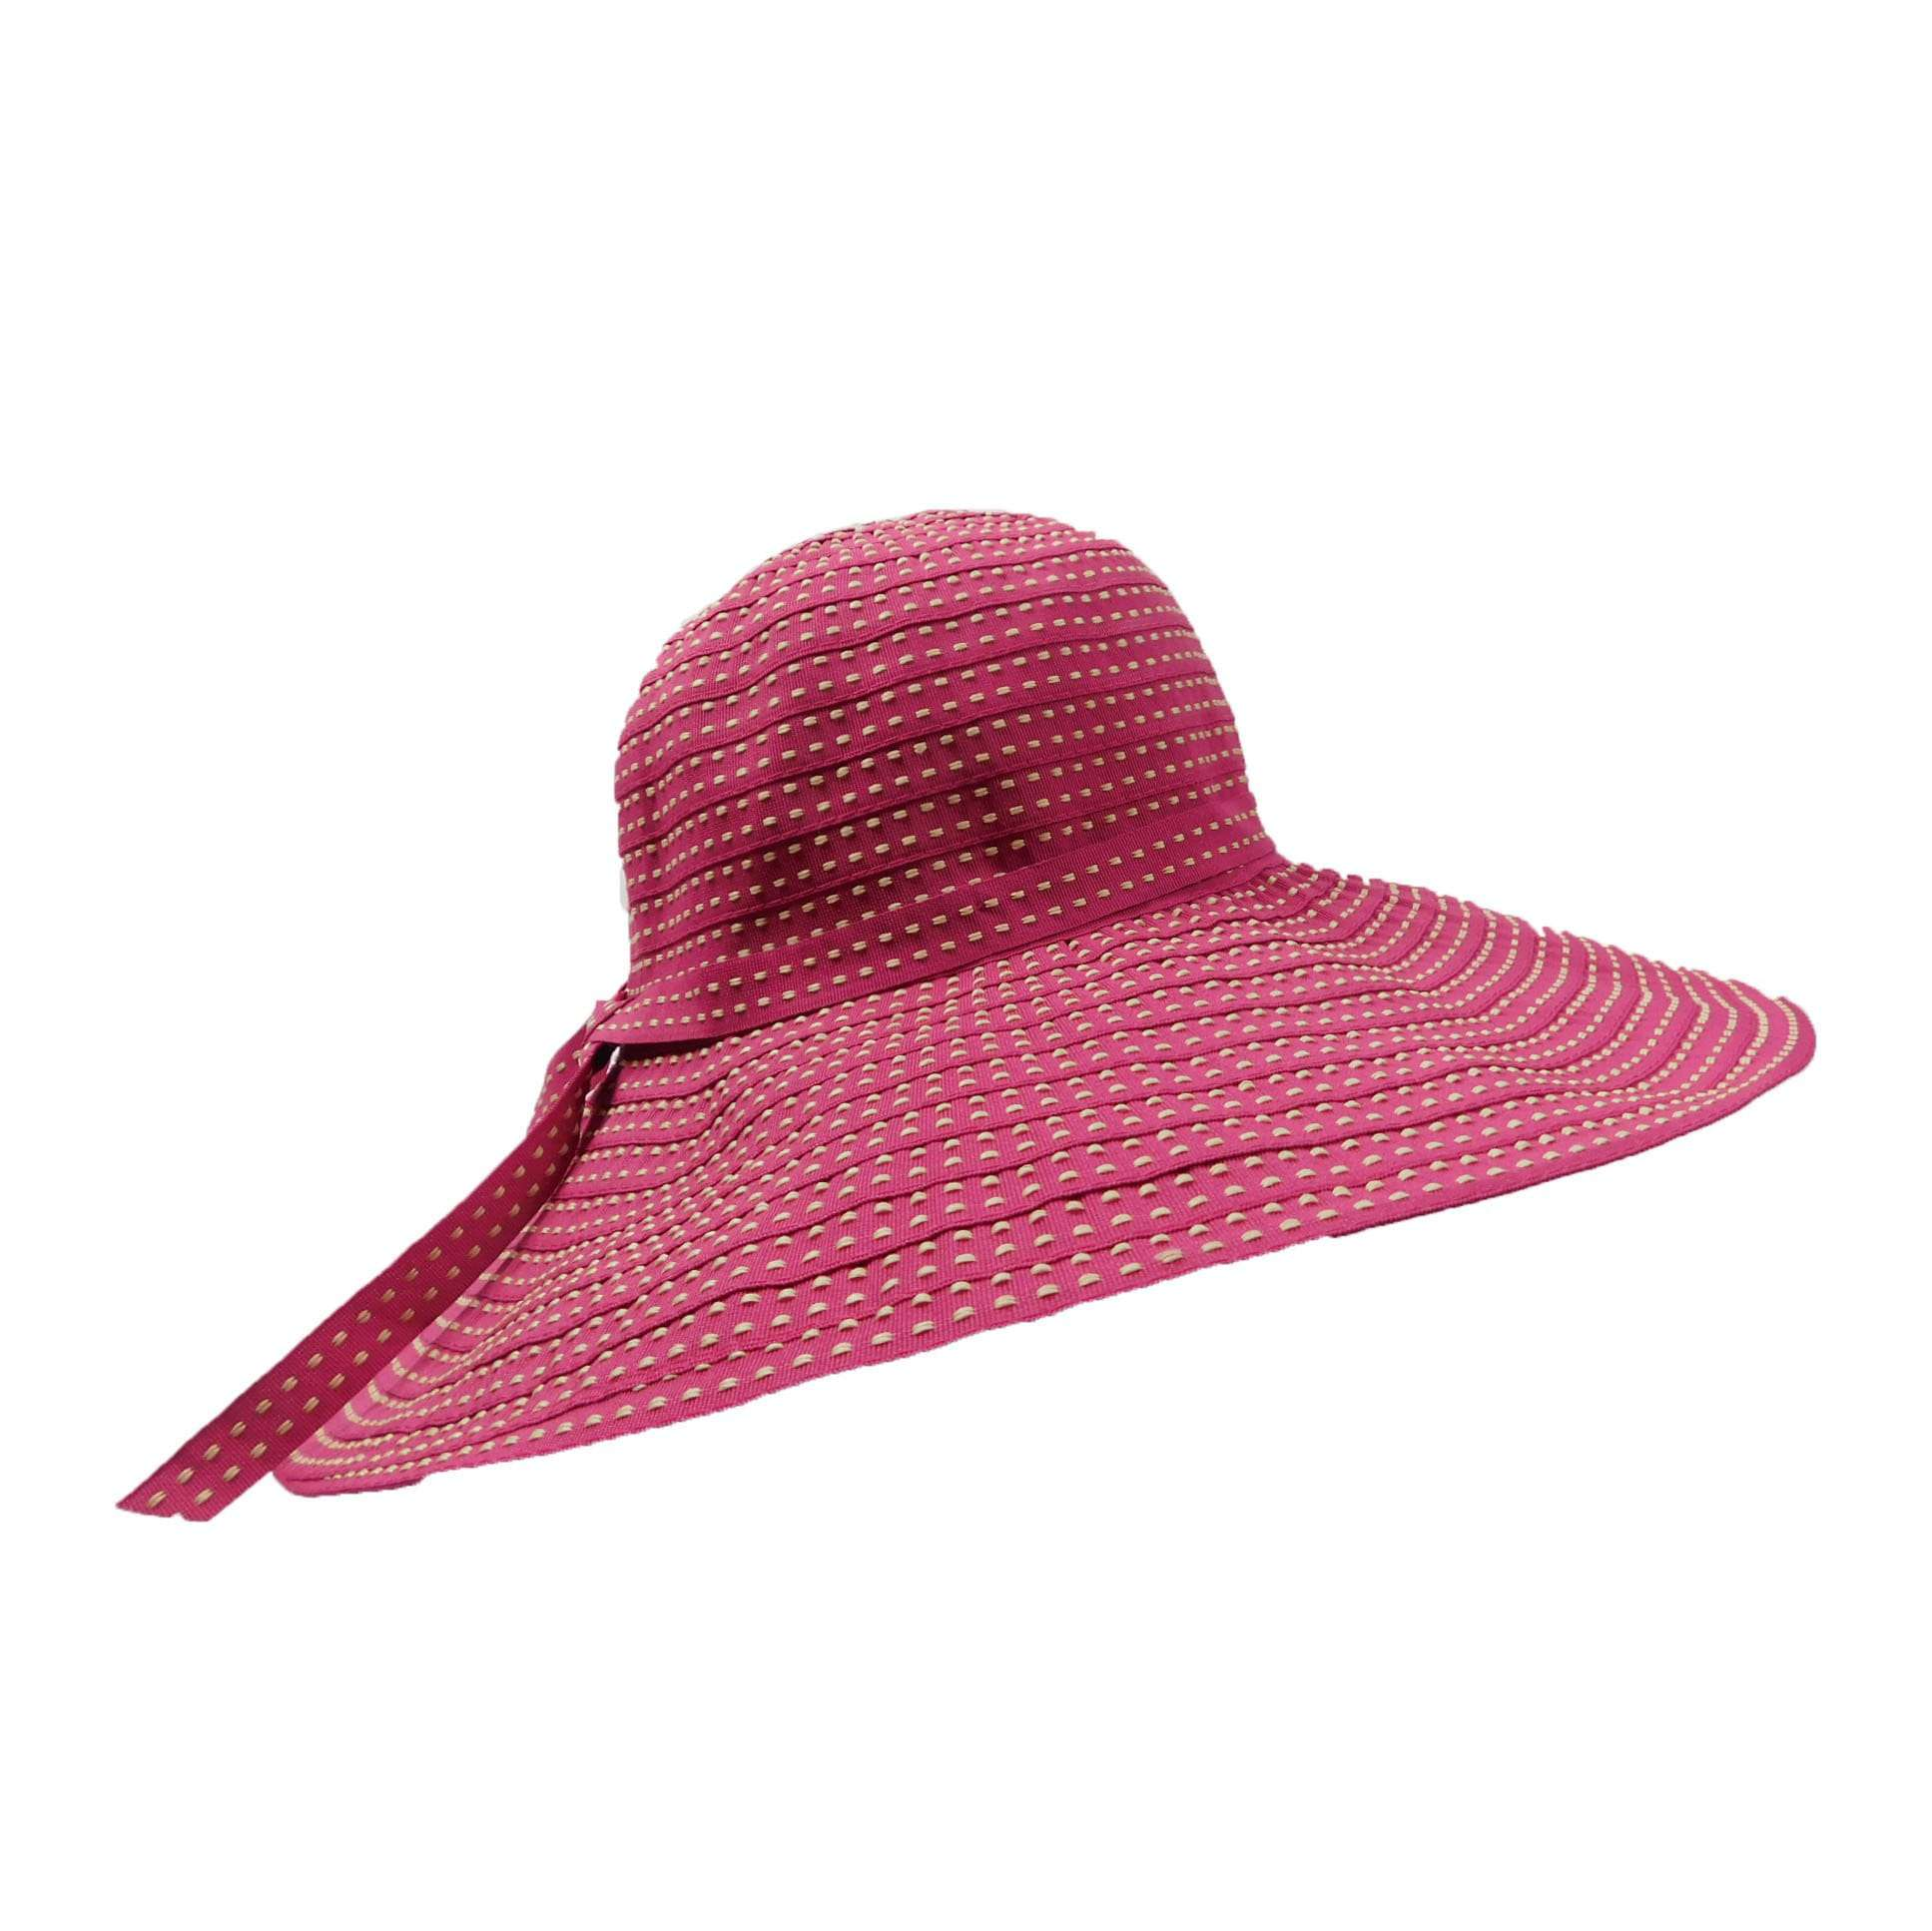 fac1c470a6d Shapeable Ribbon Floppy Sunhat - SetarTrading Hats